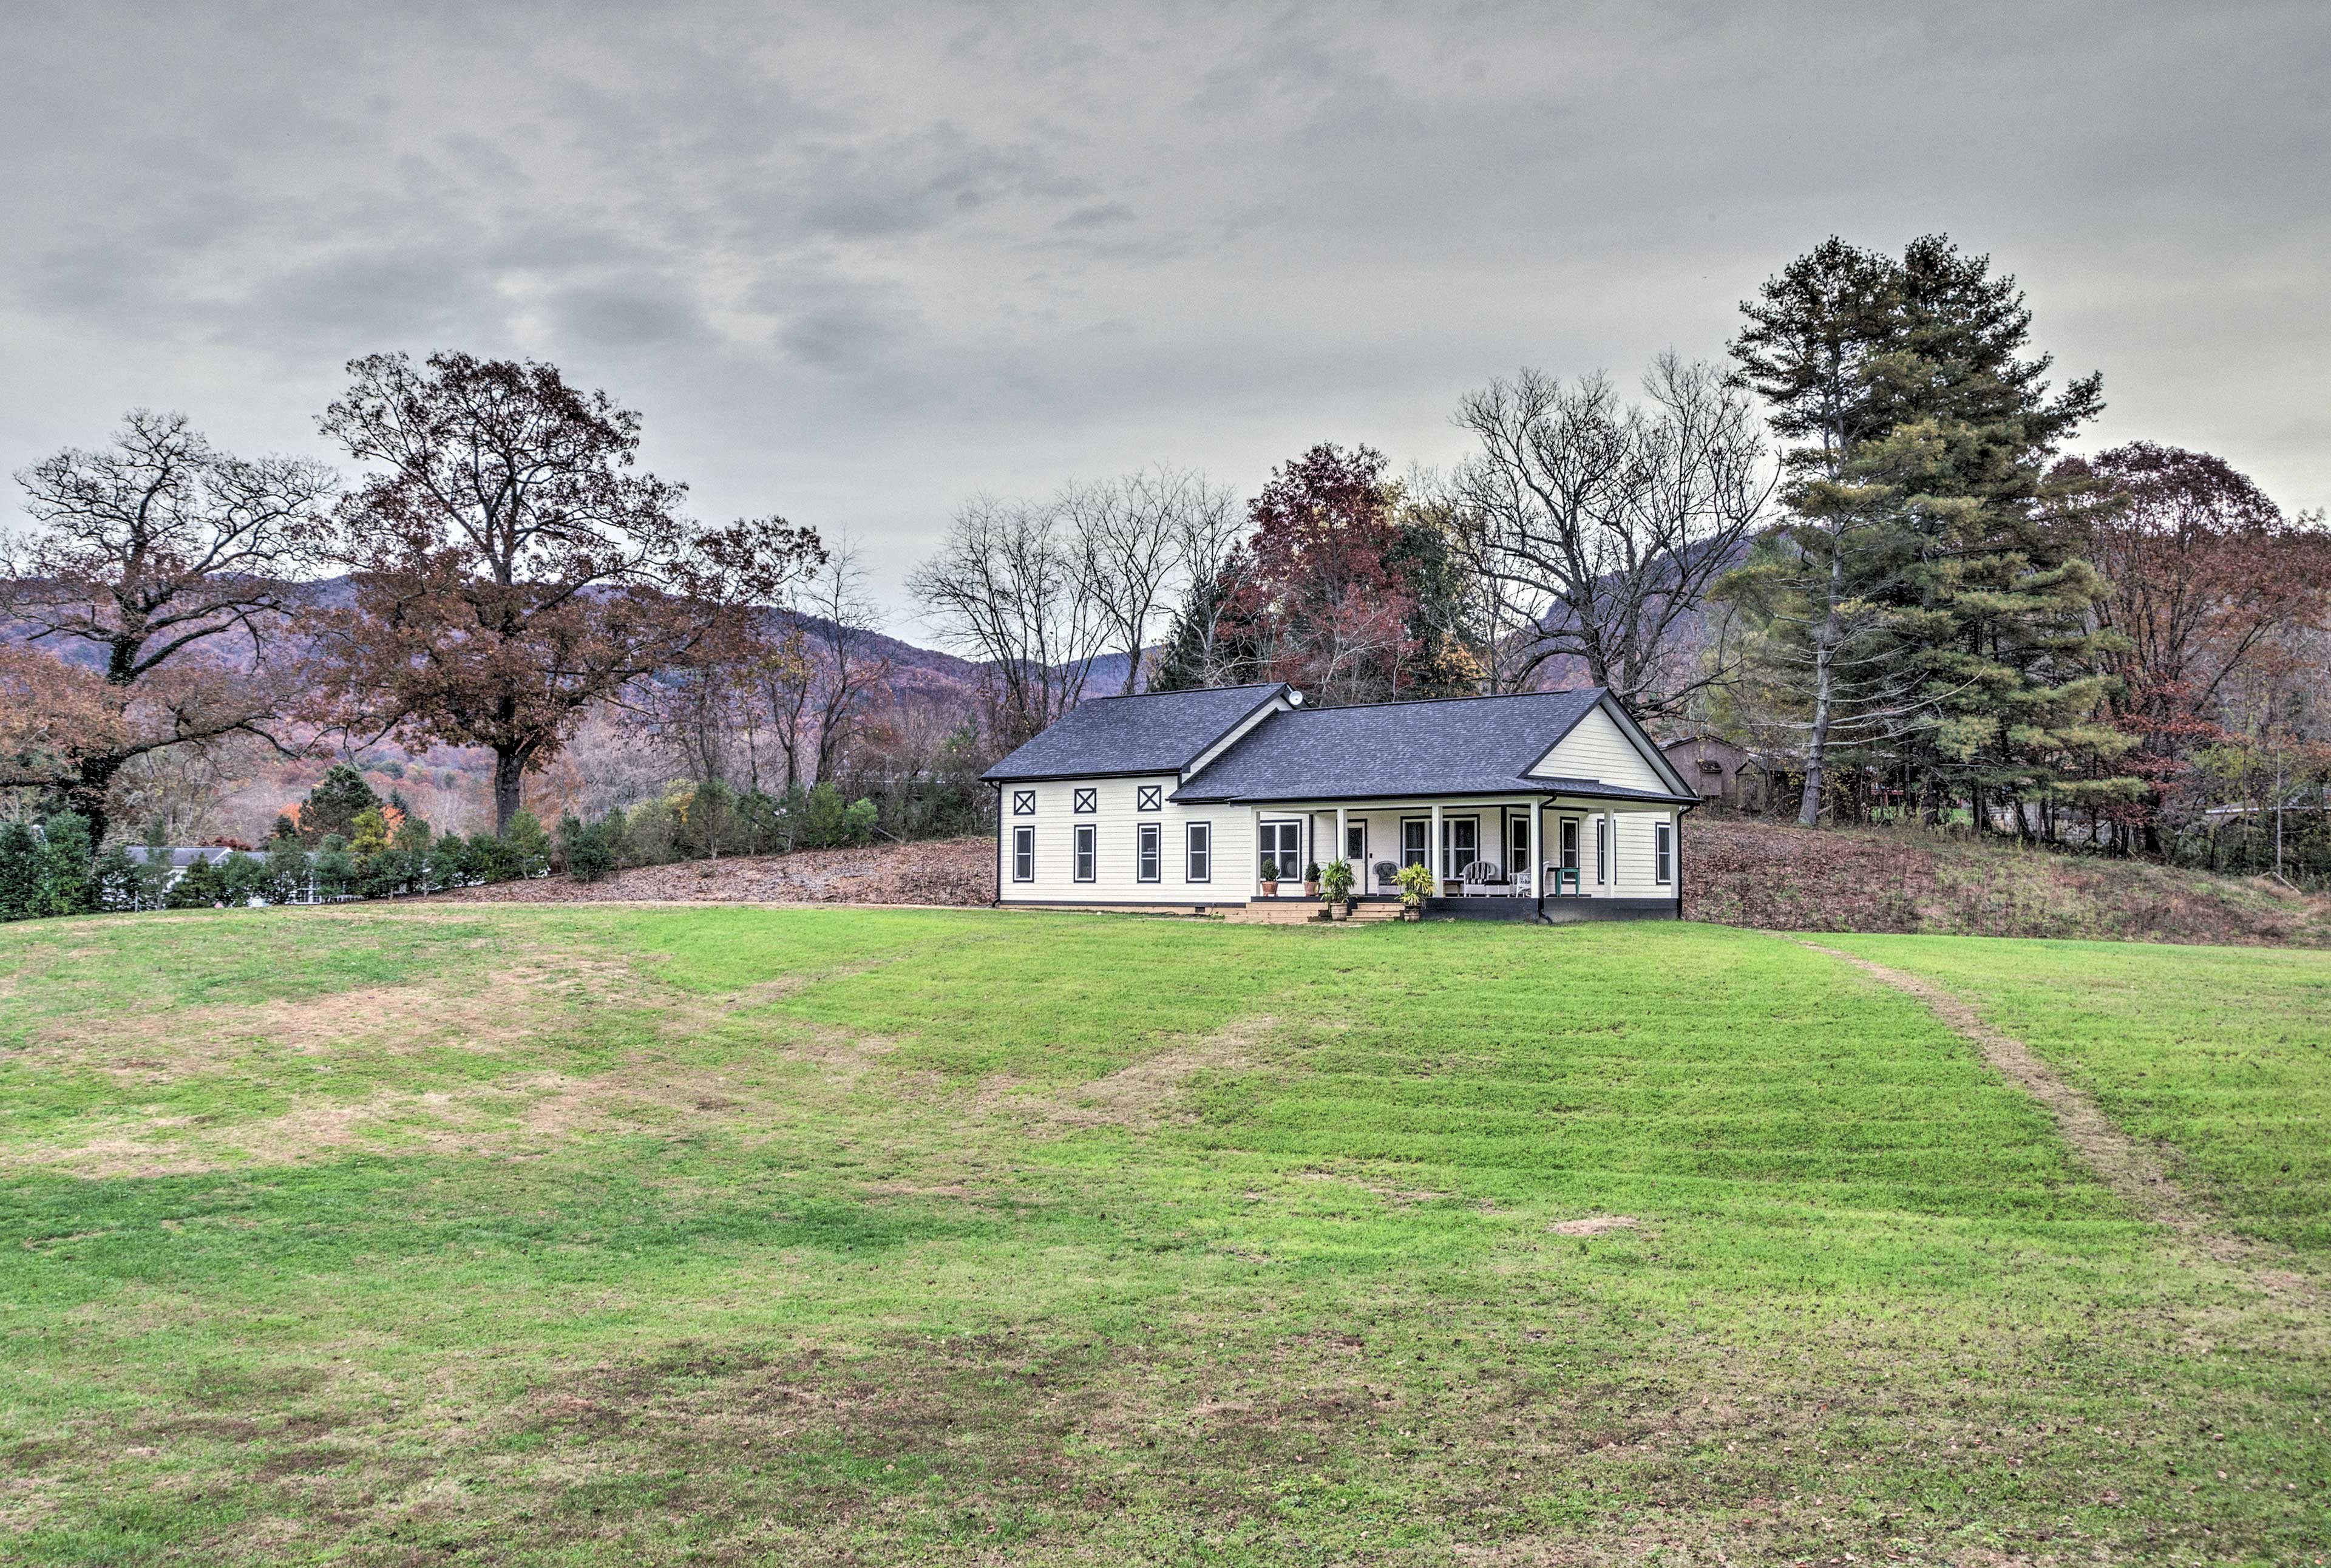 The property is less than 30 minutes from Asheville!